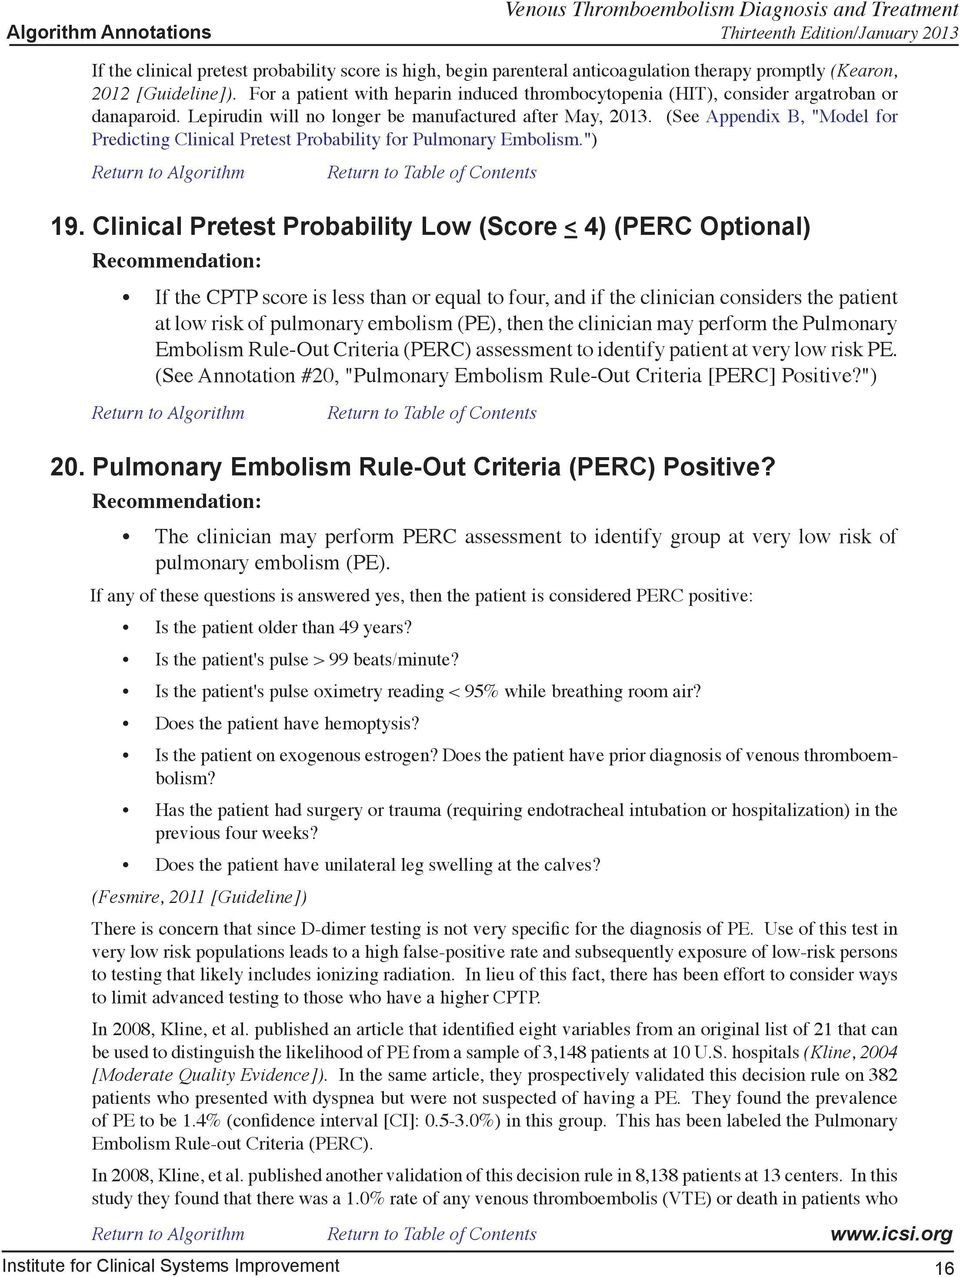 "(See Appendix B, ""Model for Predicting Clinical Pretest Probability for Pulmonary Embolism."") 19."